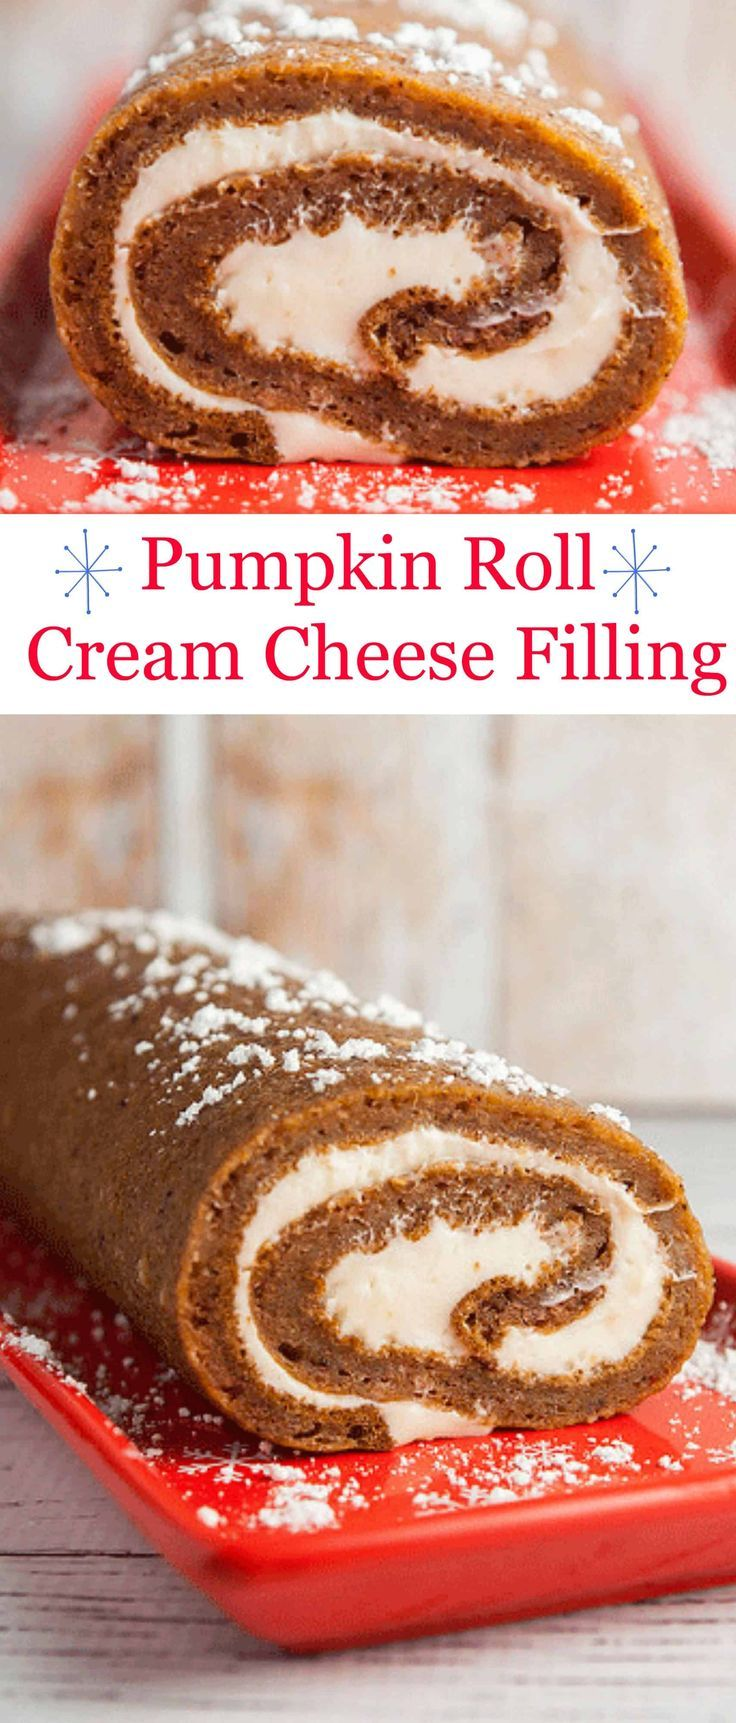 Pumpkin Roll With Cream Cheese Filling - Easy Recipe for First Timers!